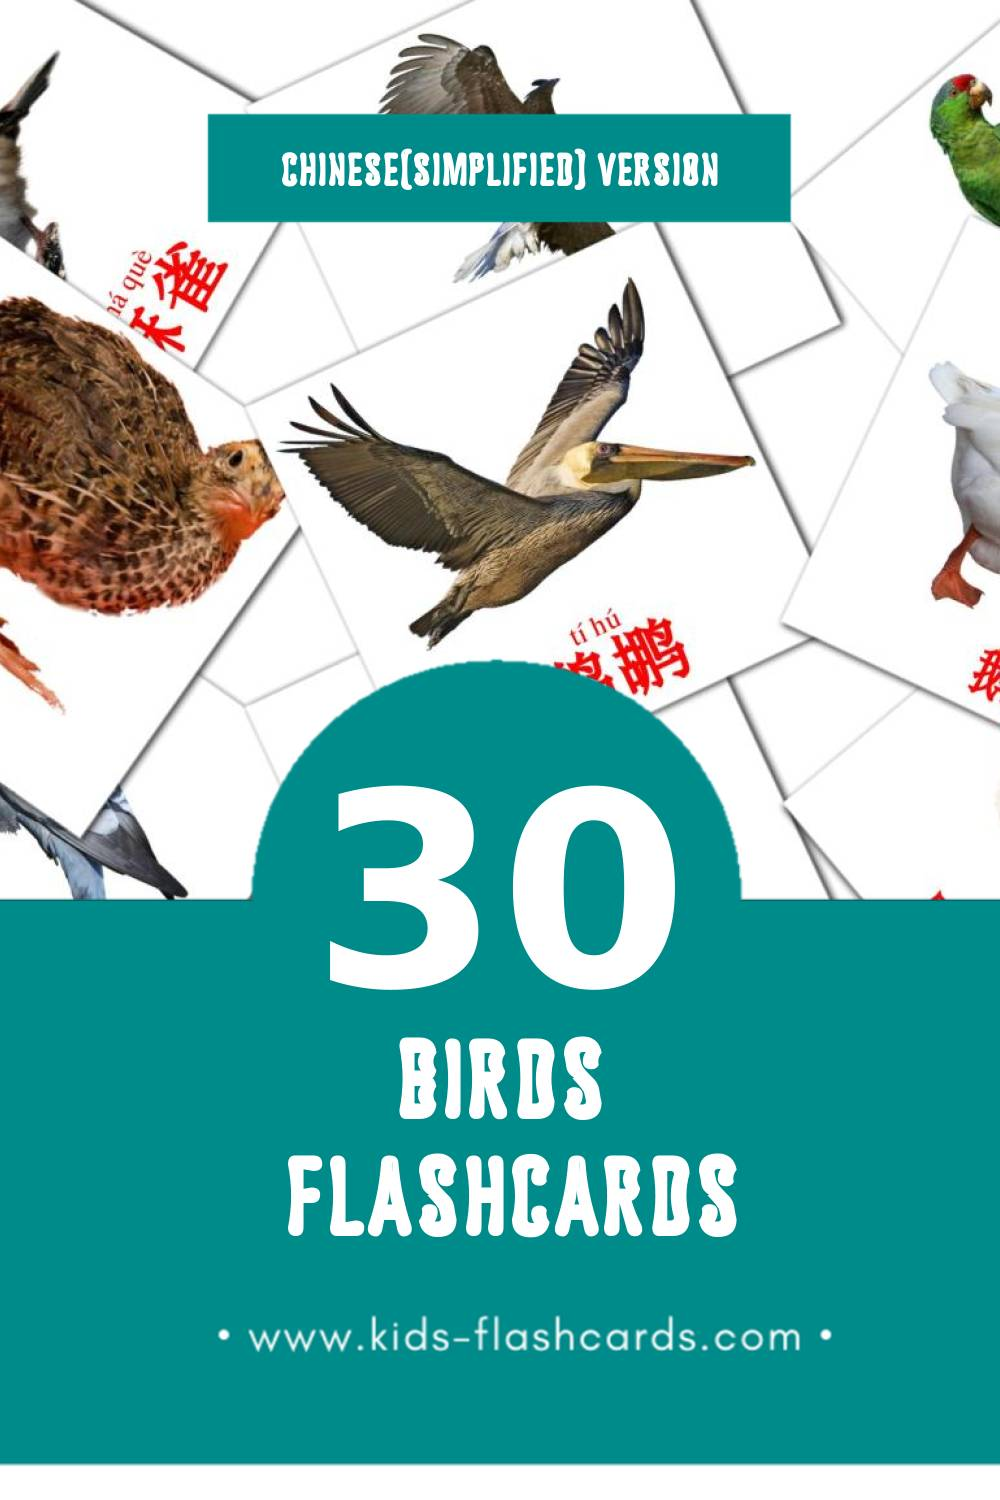 Visual 鸟类 Flashcards for Toddlers (30 cards in Chinese(Simplified))